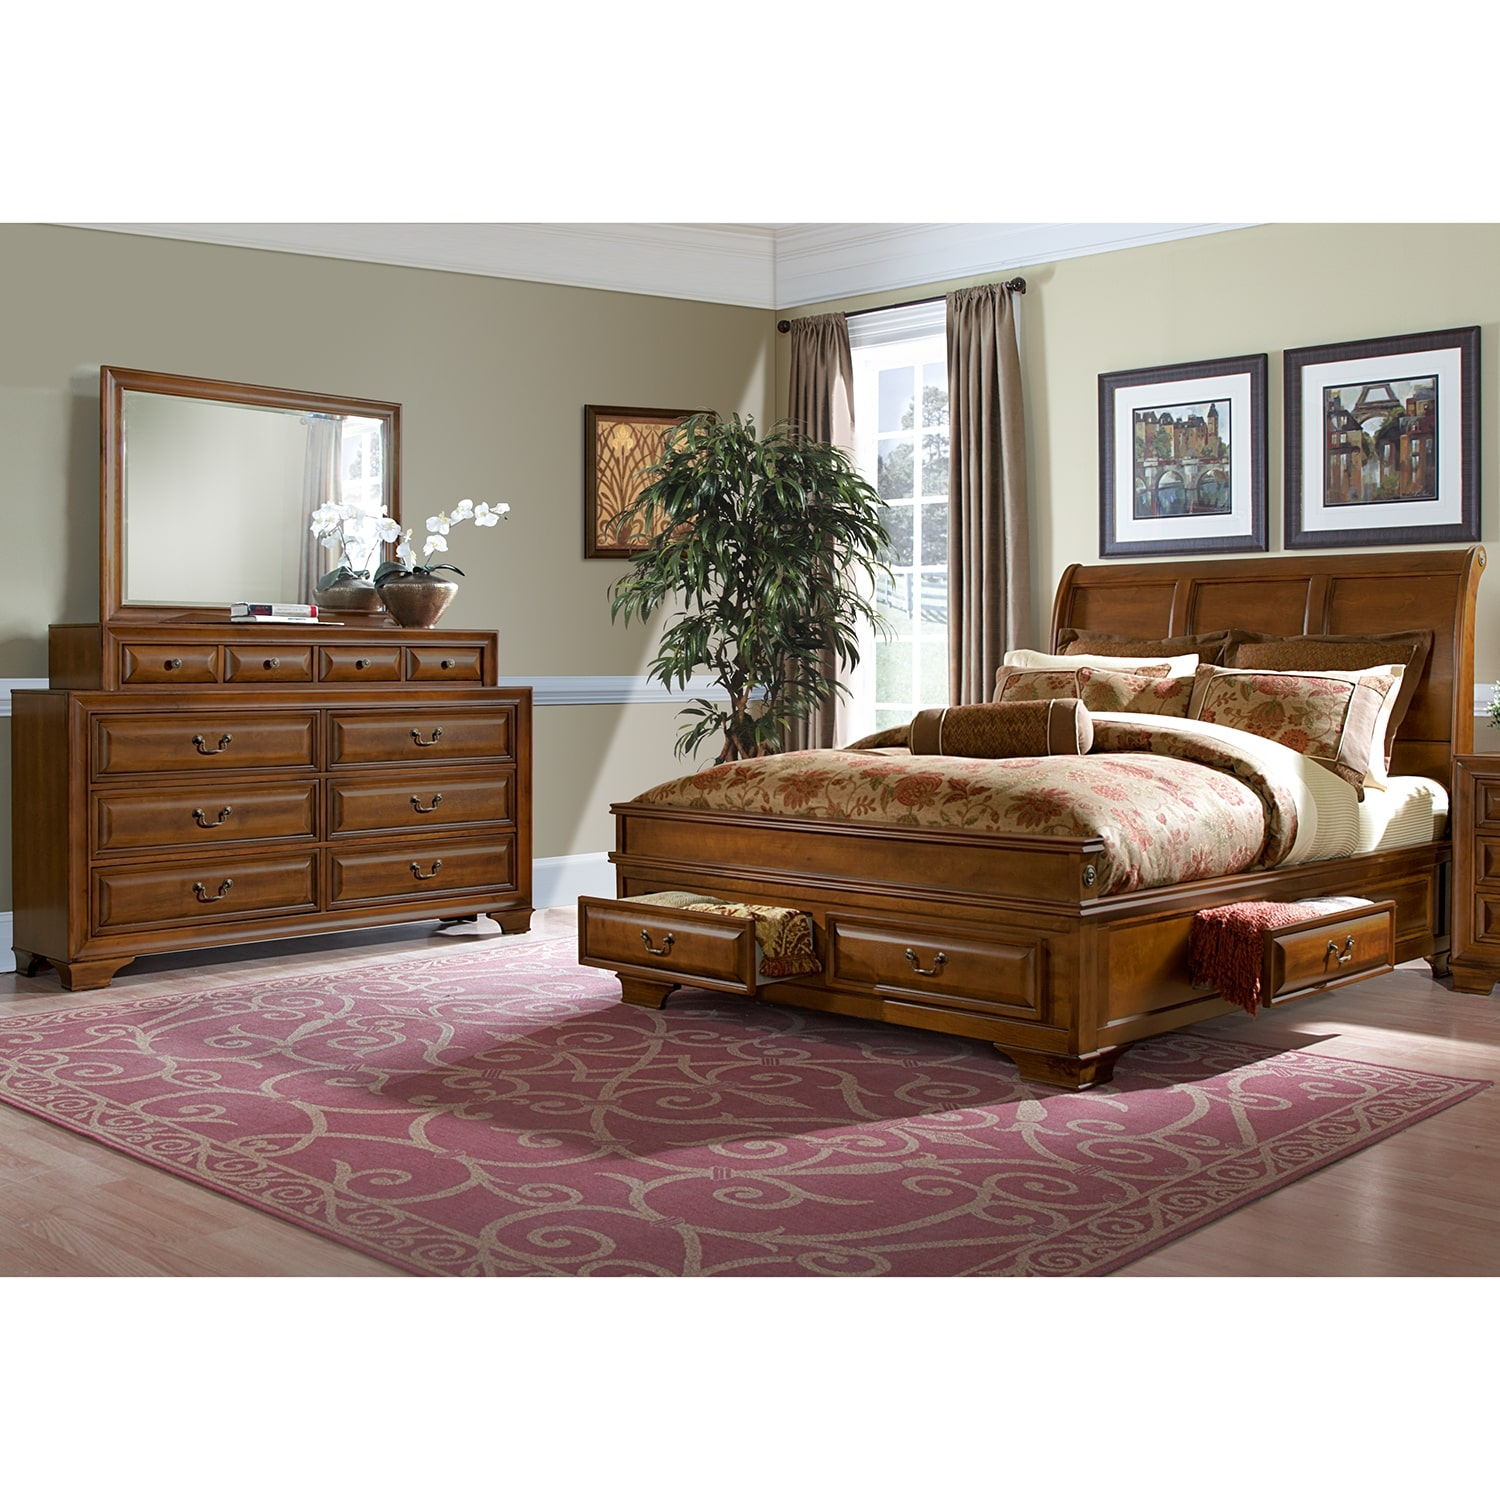 The herringbone pattern on the headboard, dresser, chest and nightstand creates a striking feature will stand out in your bedroom. Sanibelle 5-Piece Queen Storage Bedroom Set - Pine | Value ...